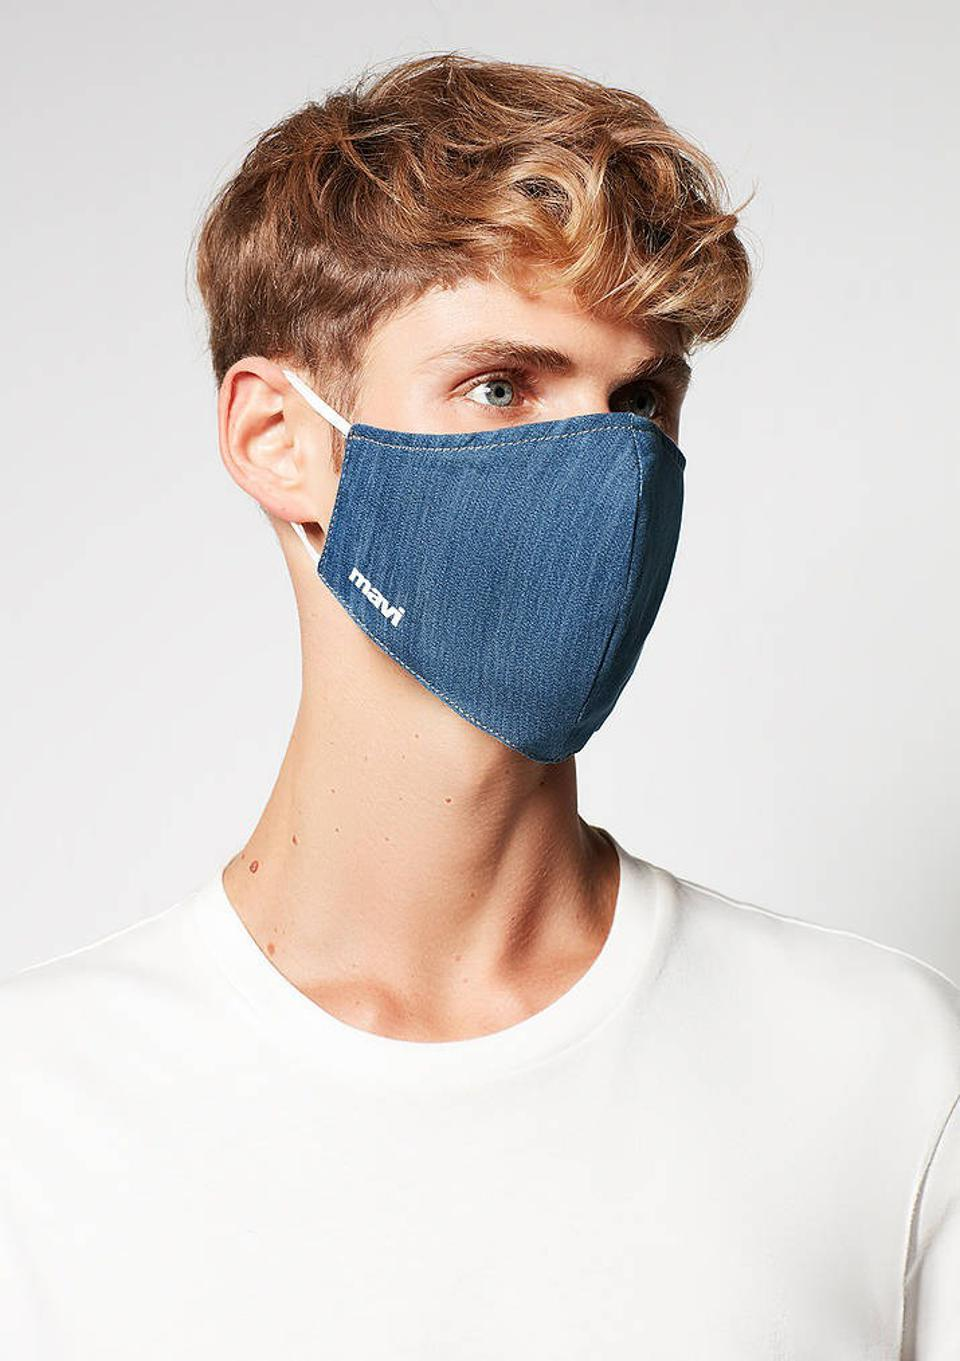 Mavi's Denim Face Mask, available in S/M or L/XL